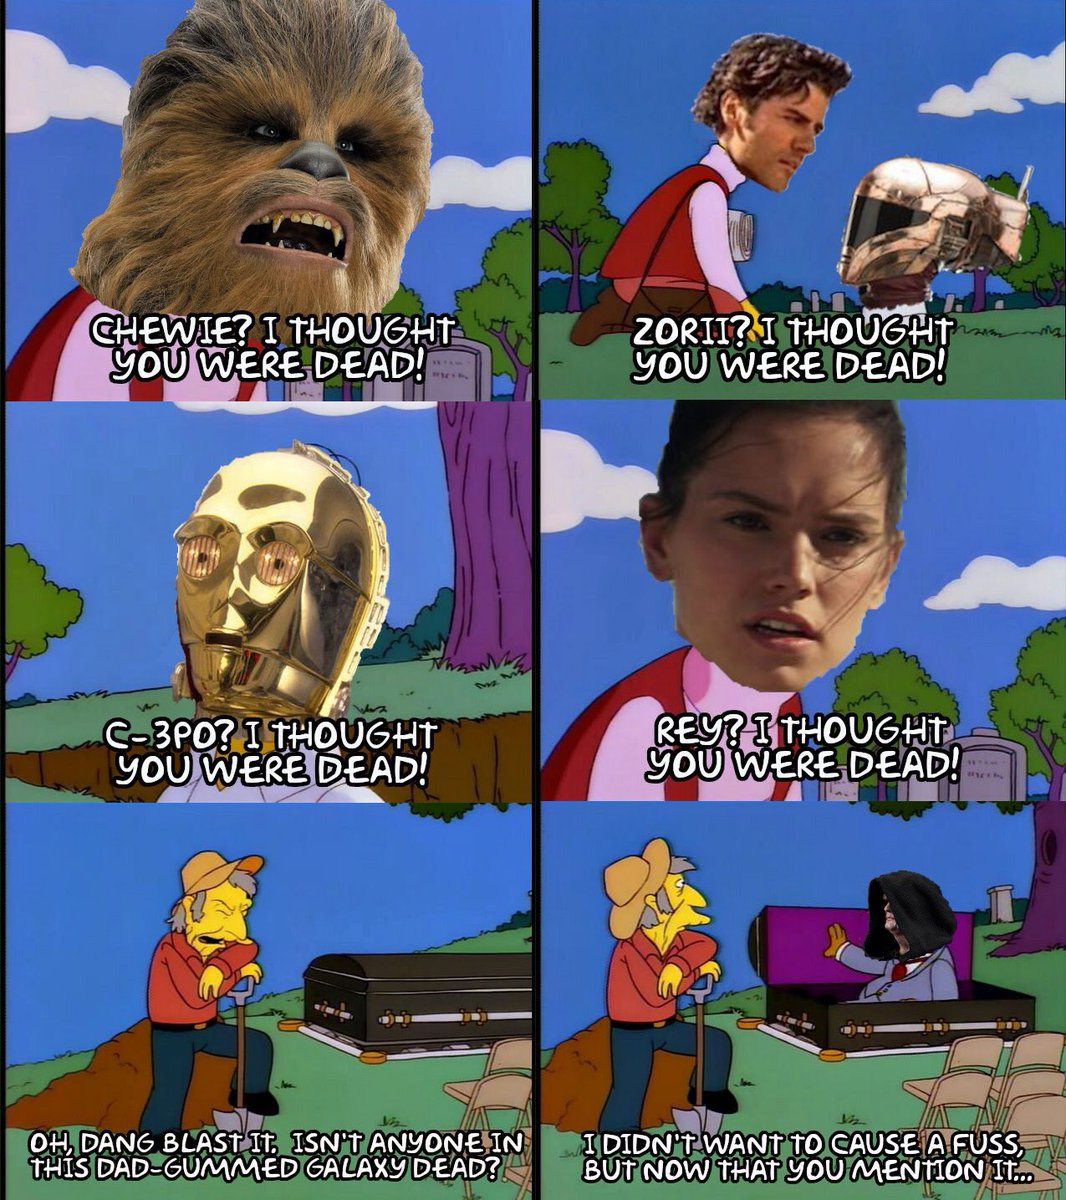 #TheRiseOfSkywalker summed up by #TheSimpsons.